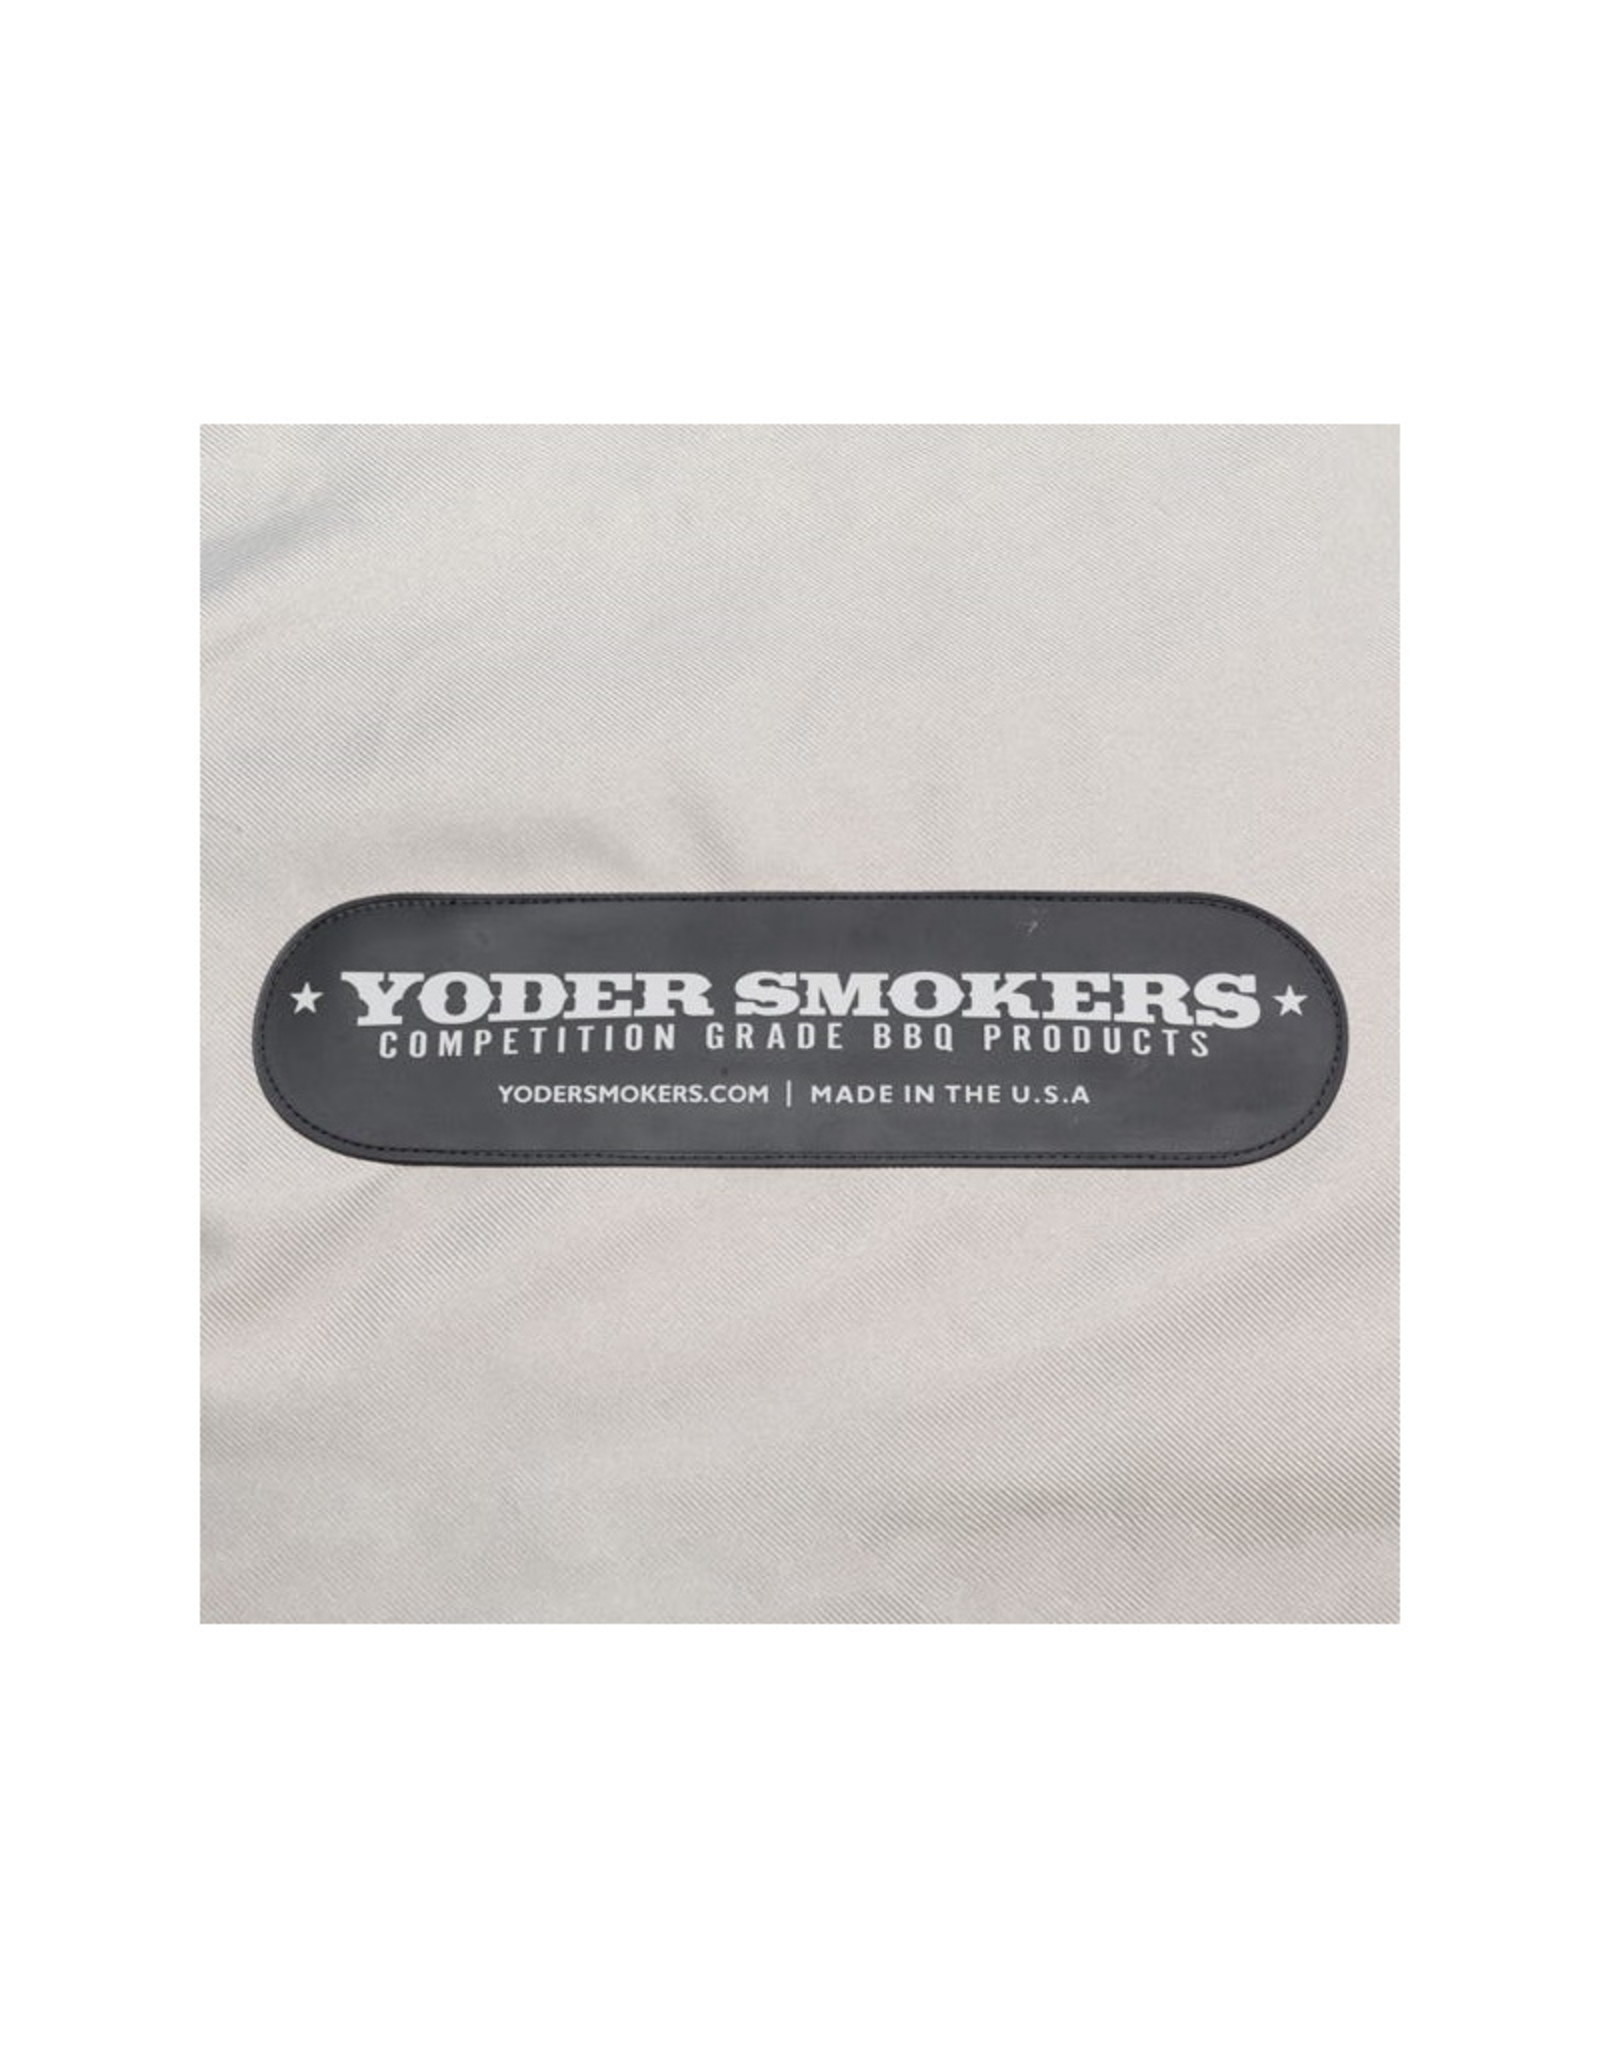 Yoder Smokers YS480 Fitted Cover